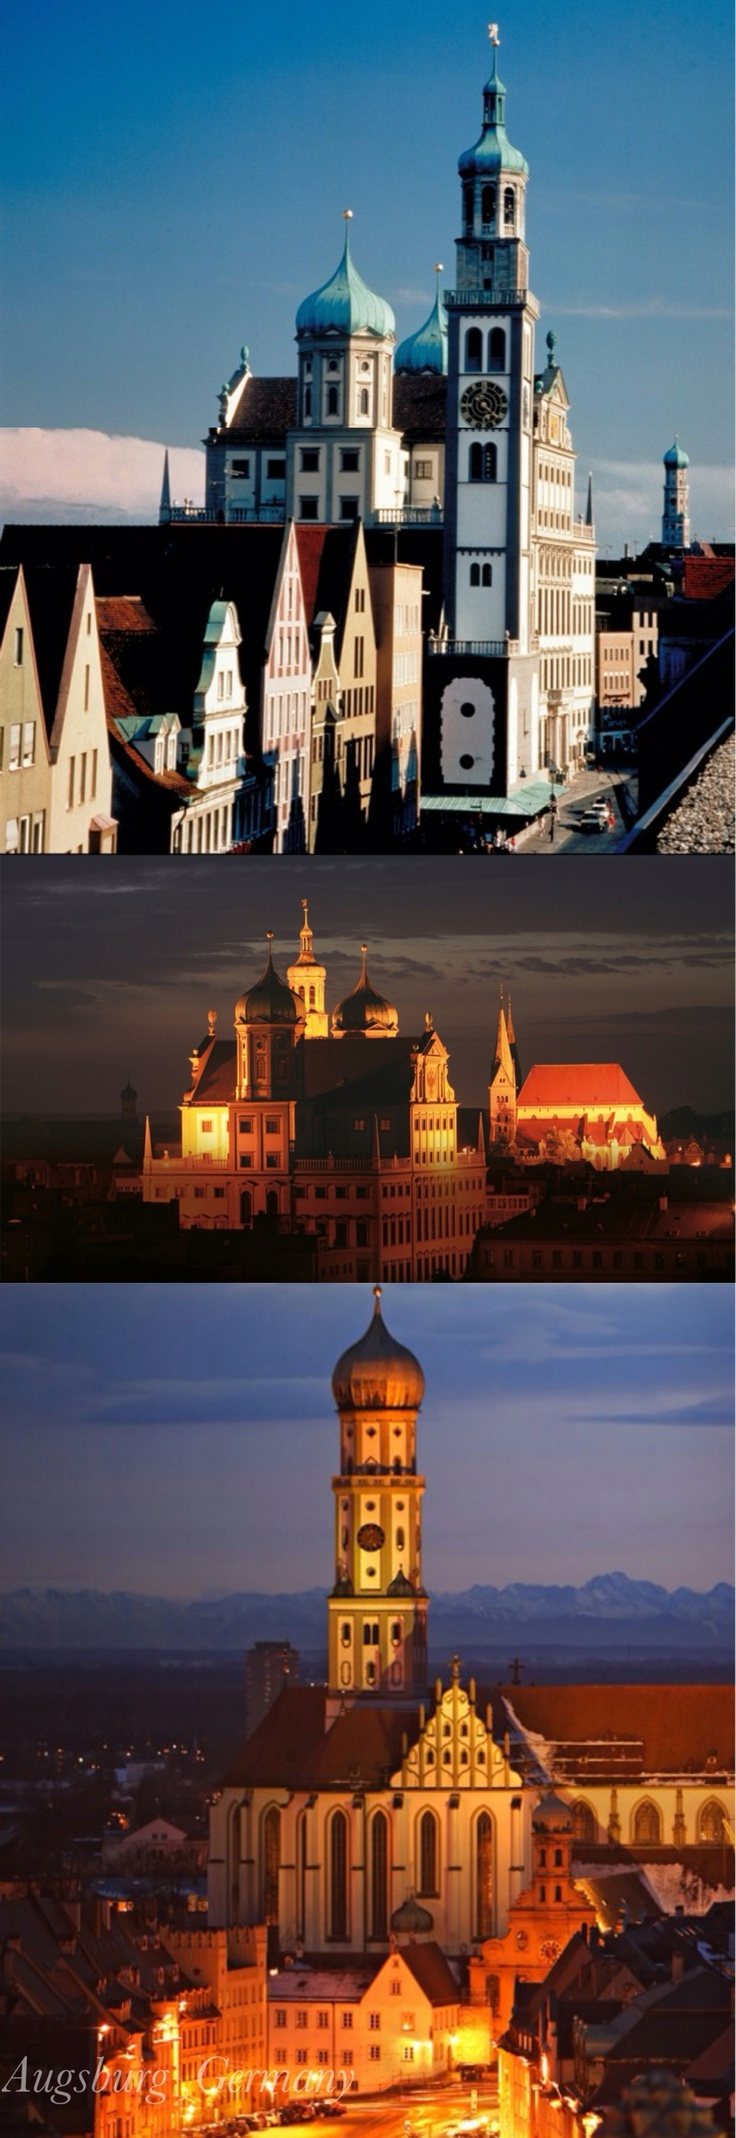 #Augsburg, with its Mozart heritage, is one of the most historically significant cities in (the the 2nd oldest city in) #Deutschland.. in #Germany